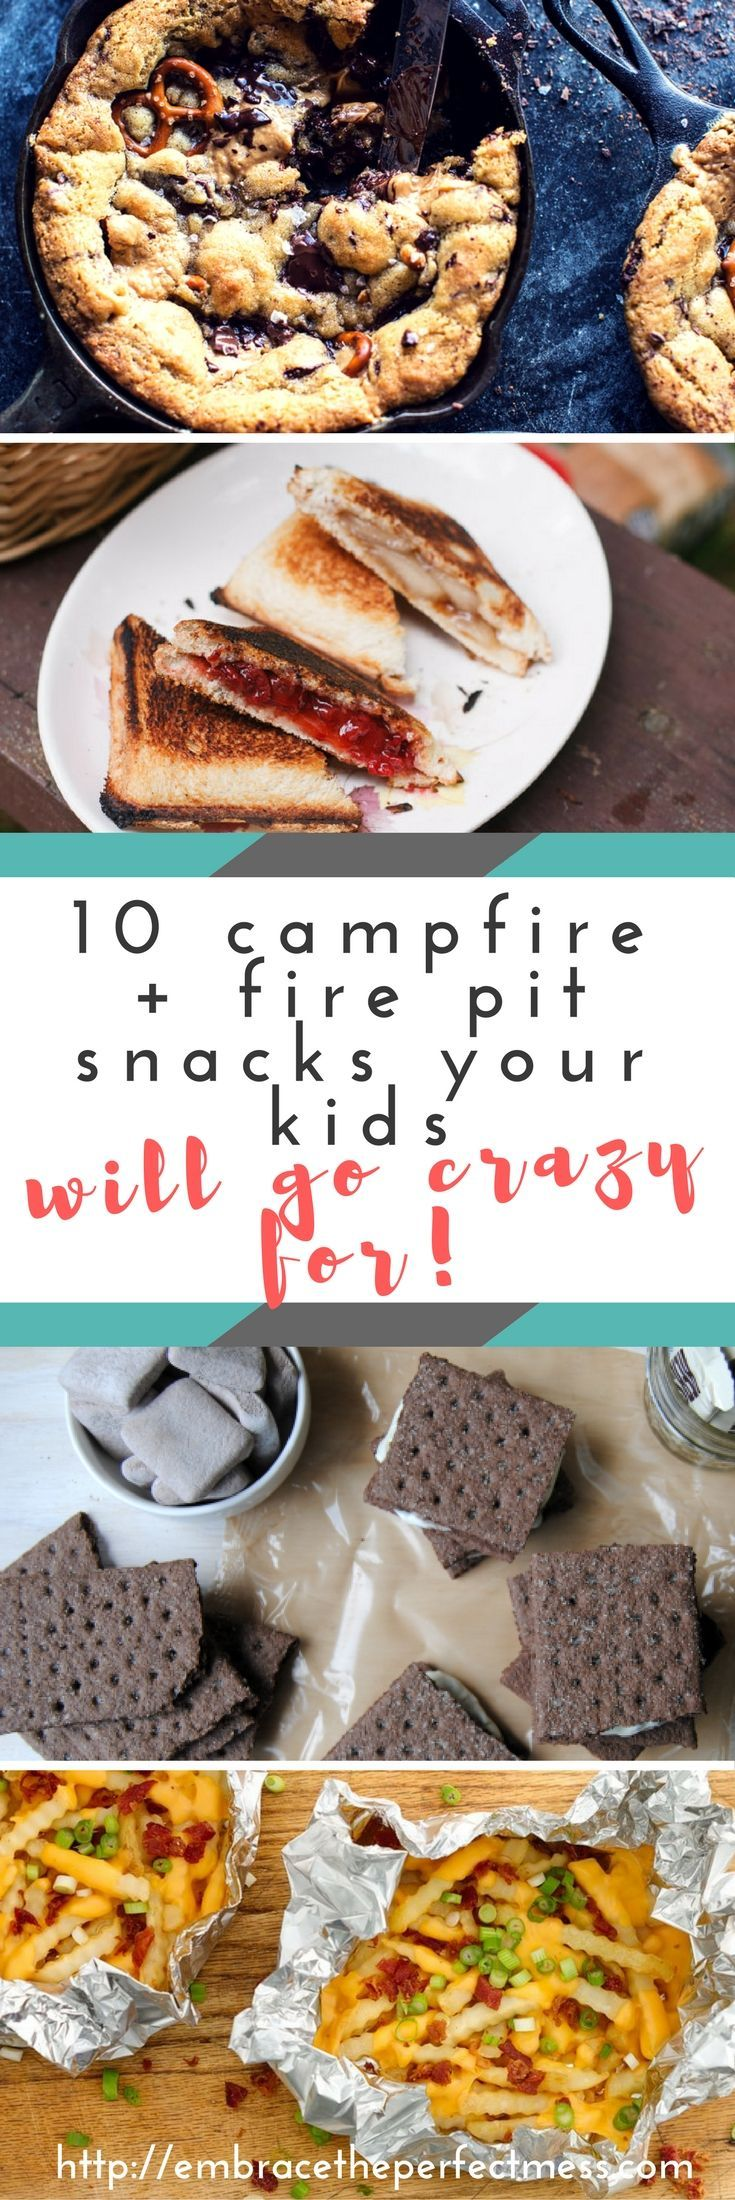 17 best images about easy camping recipes and ideas on pinterest